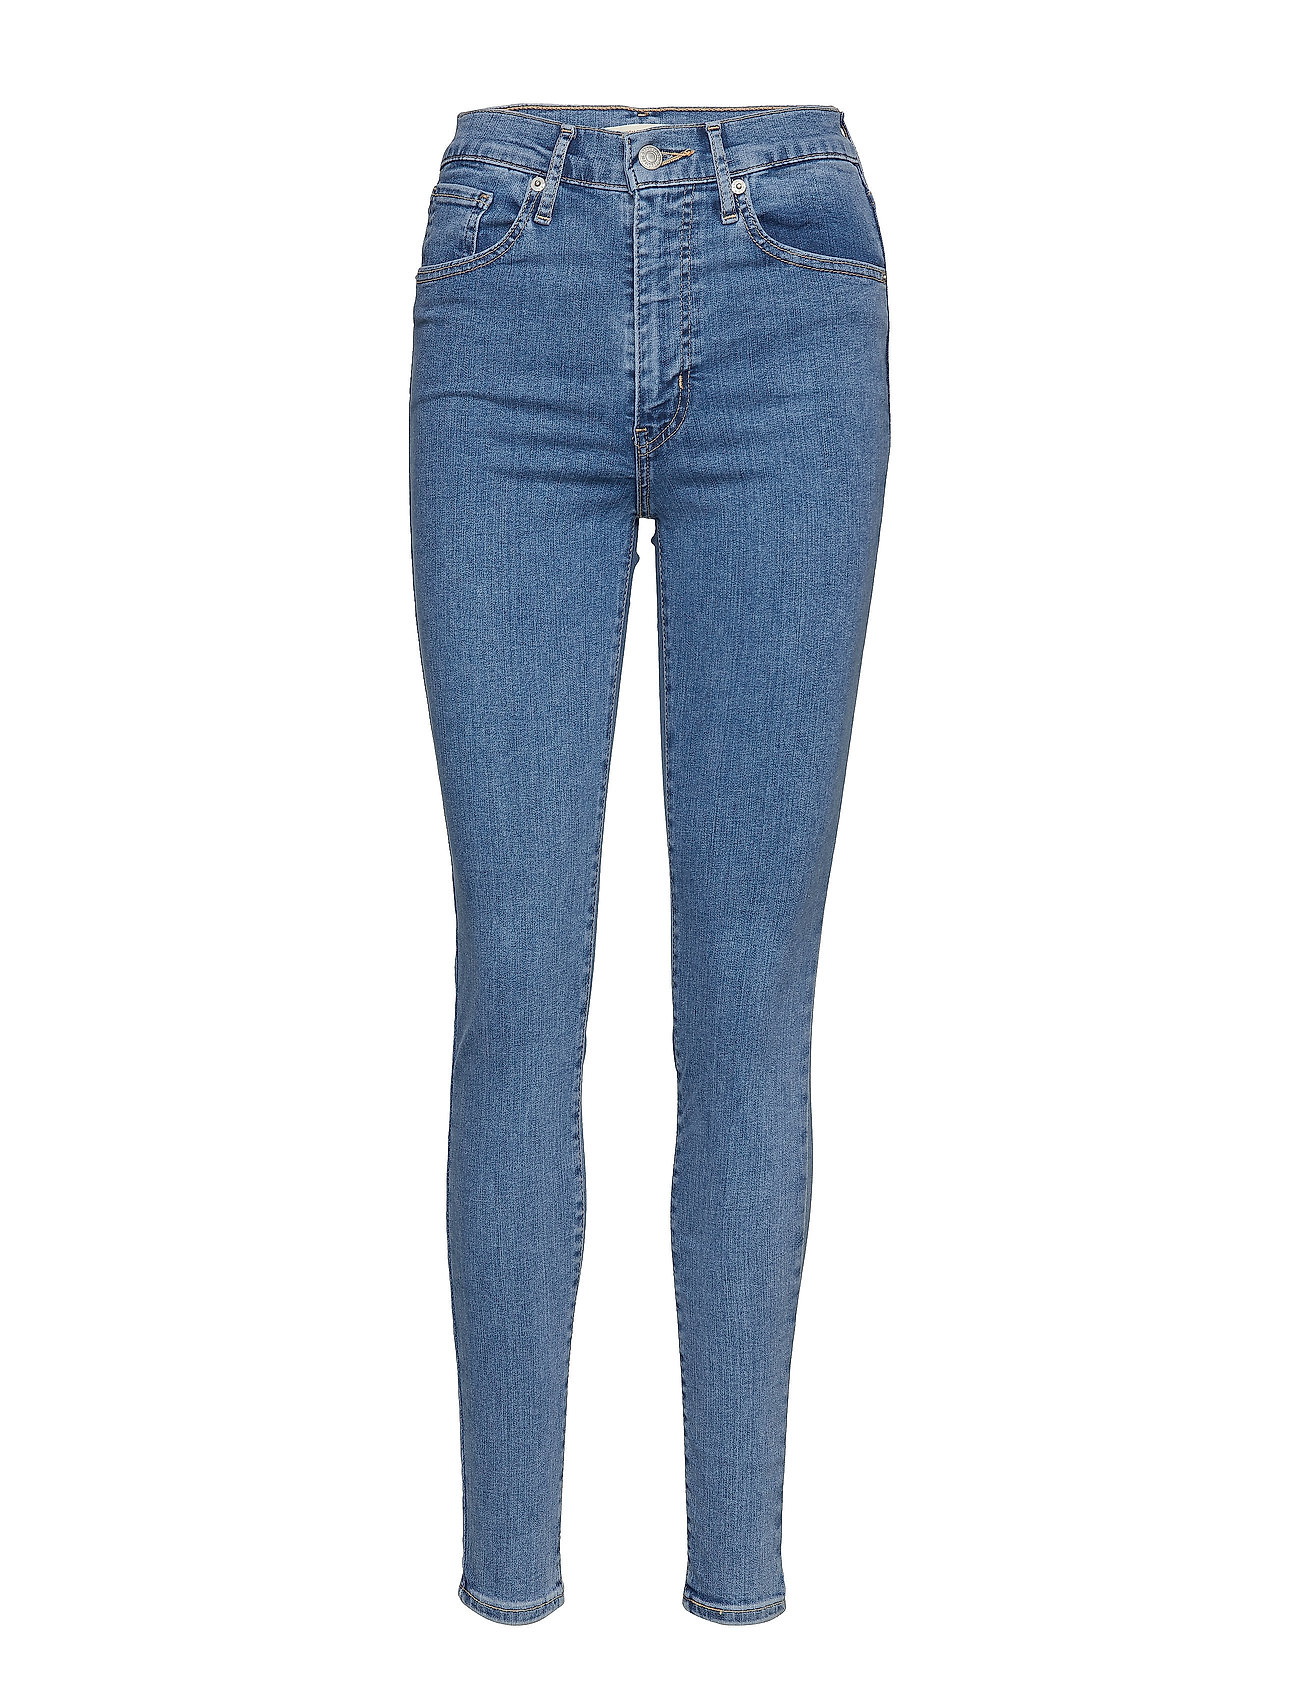 LEVI´S Women MILE HIGH SUPER SKINNY OUT THE - MED INDIGO - FLAT FINISH